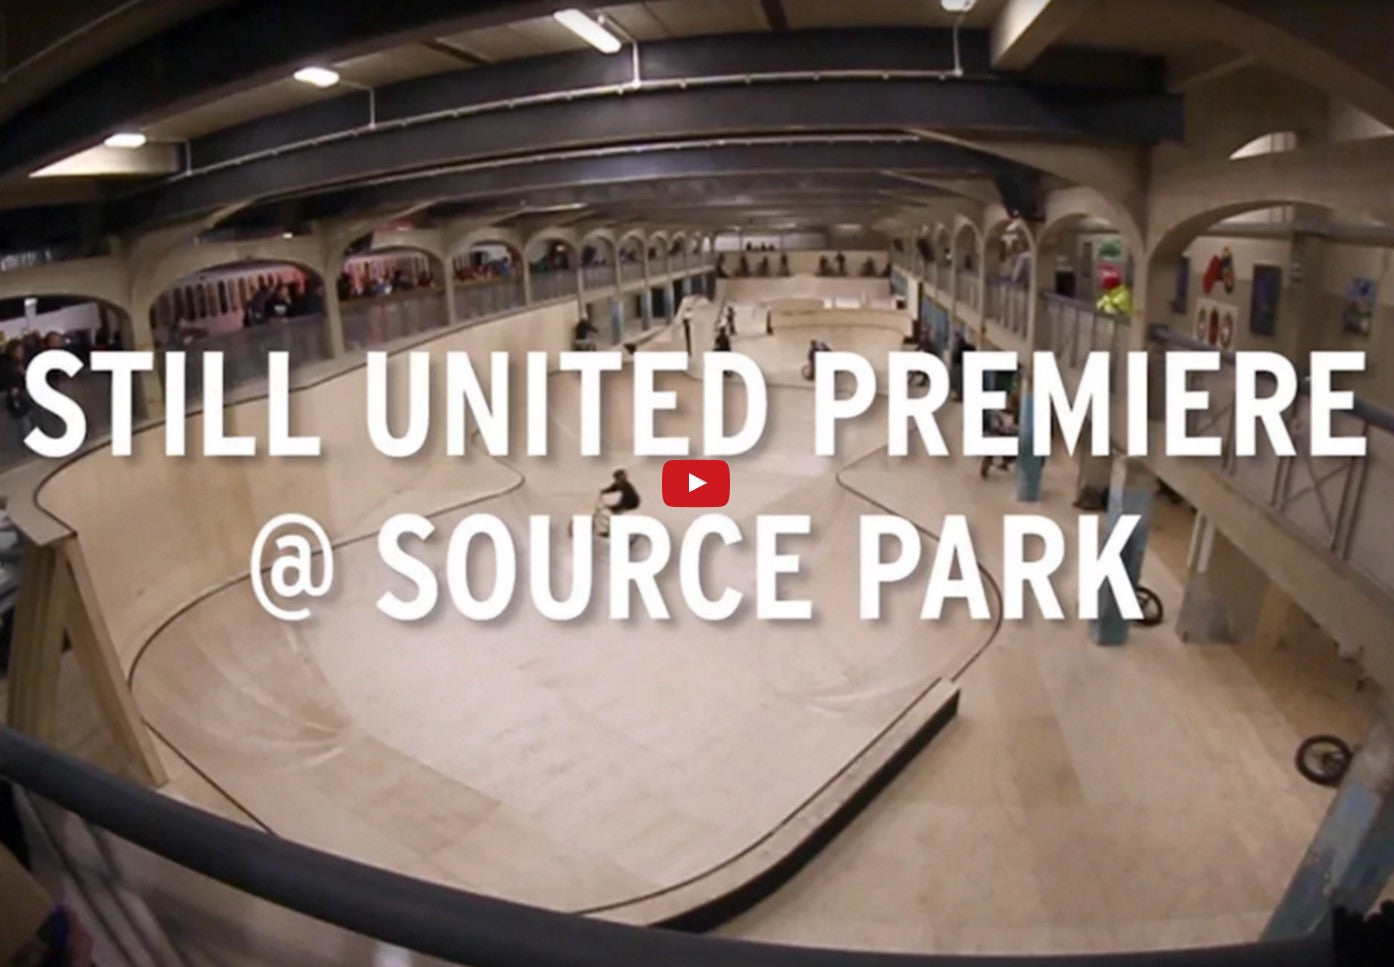 Still United Premier Video at The Source Park from Freedom BMX